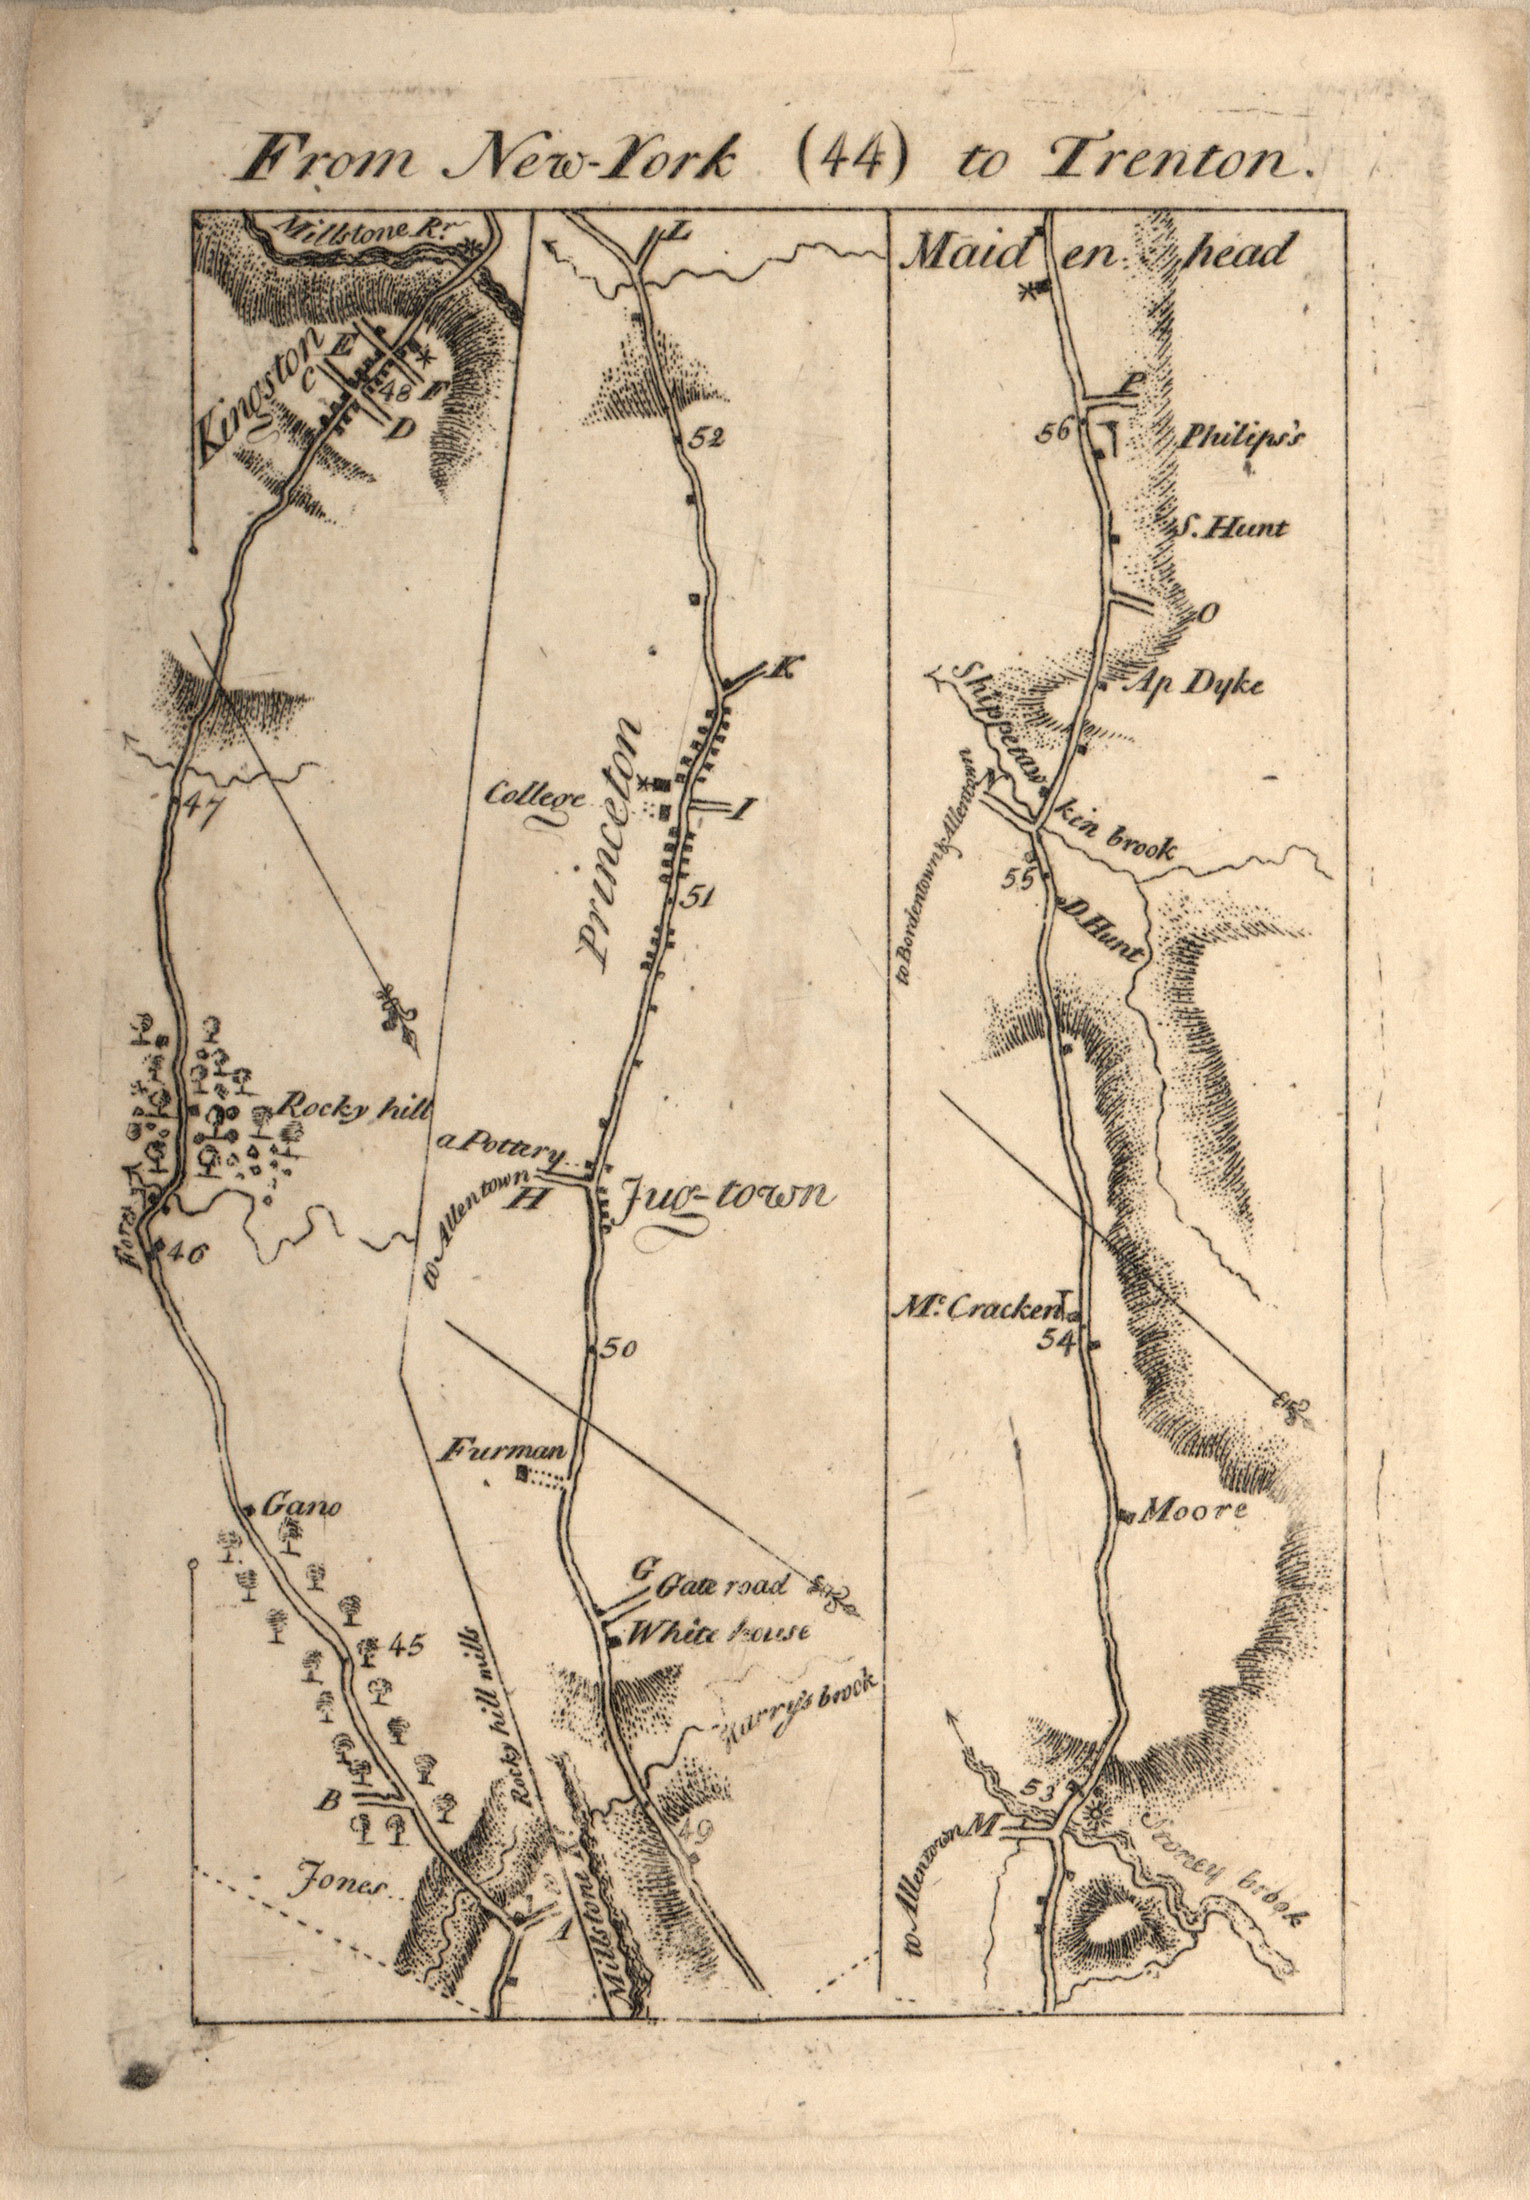 Map from New-York to Trenton